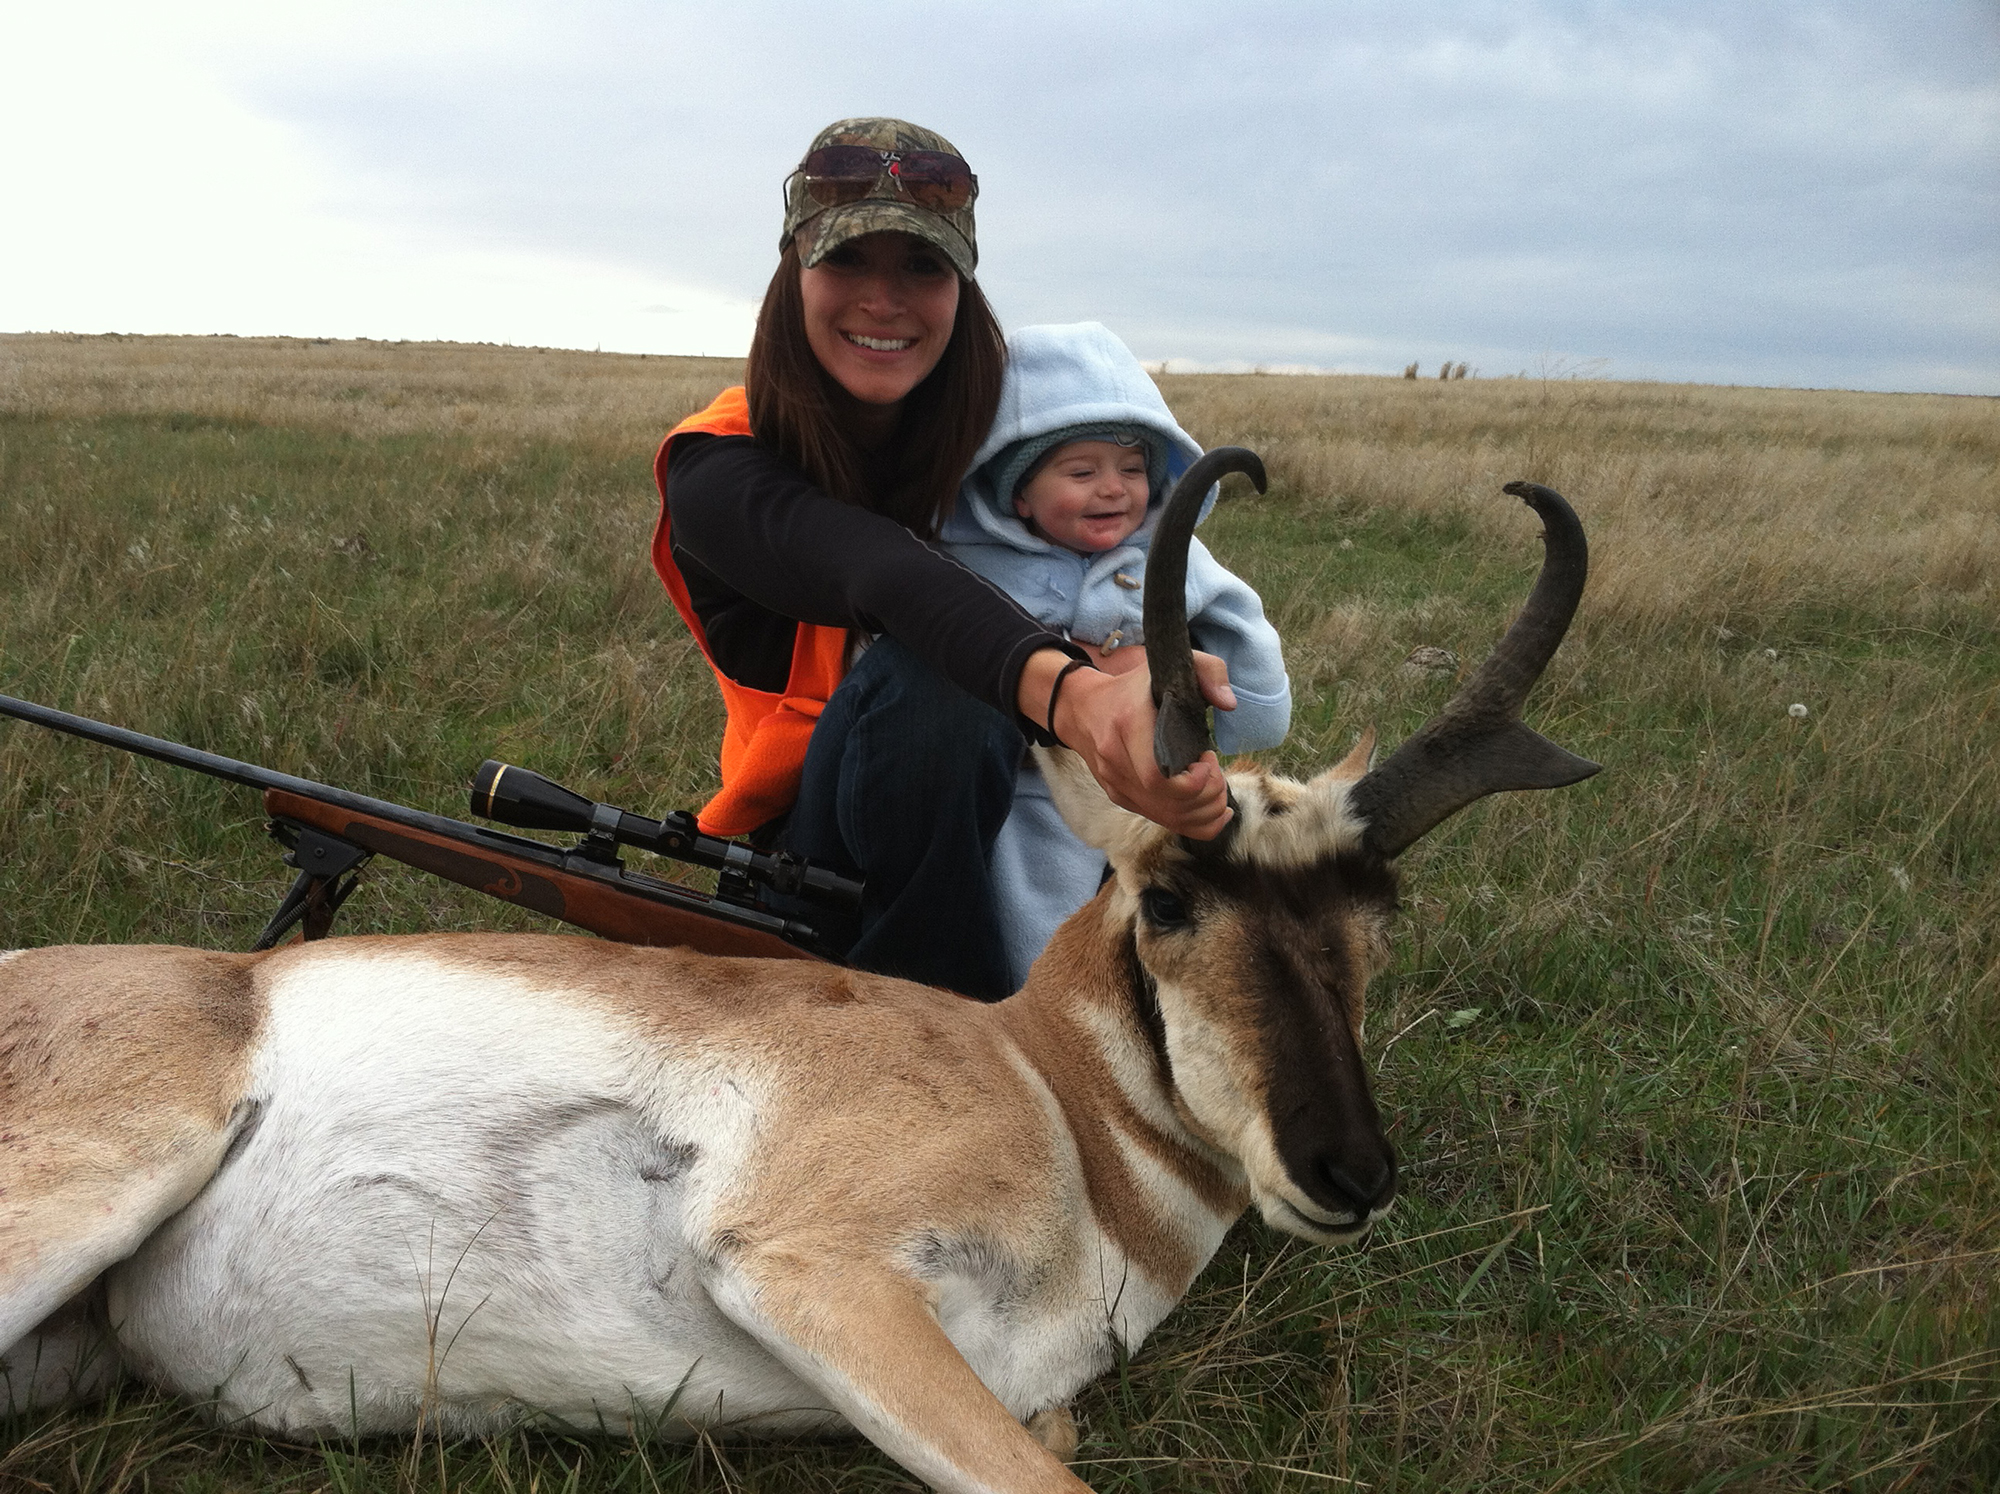 Jaimie and her son after a successful antelope hunt.